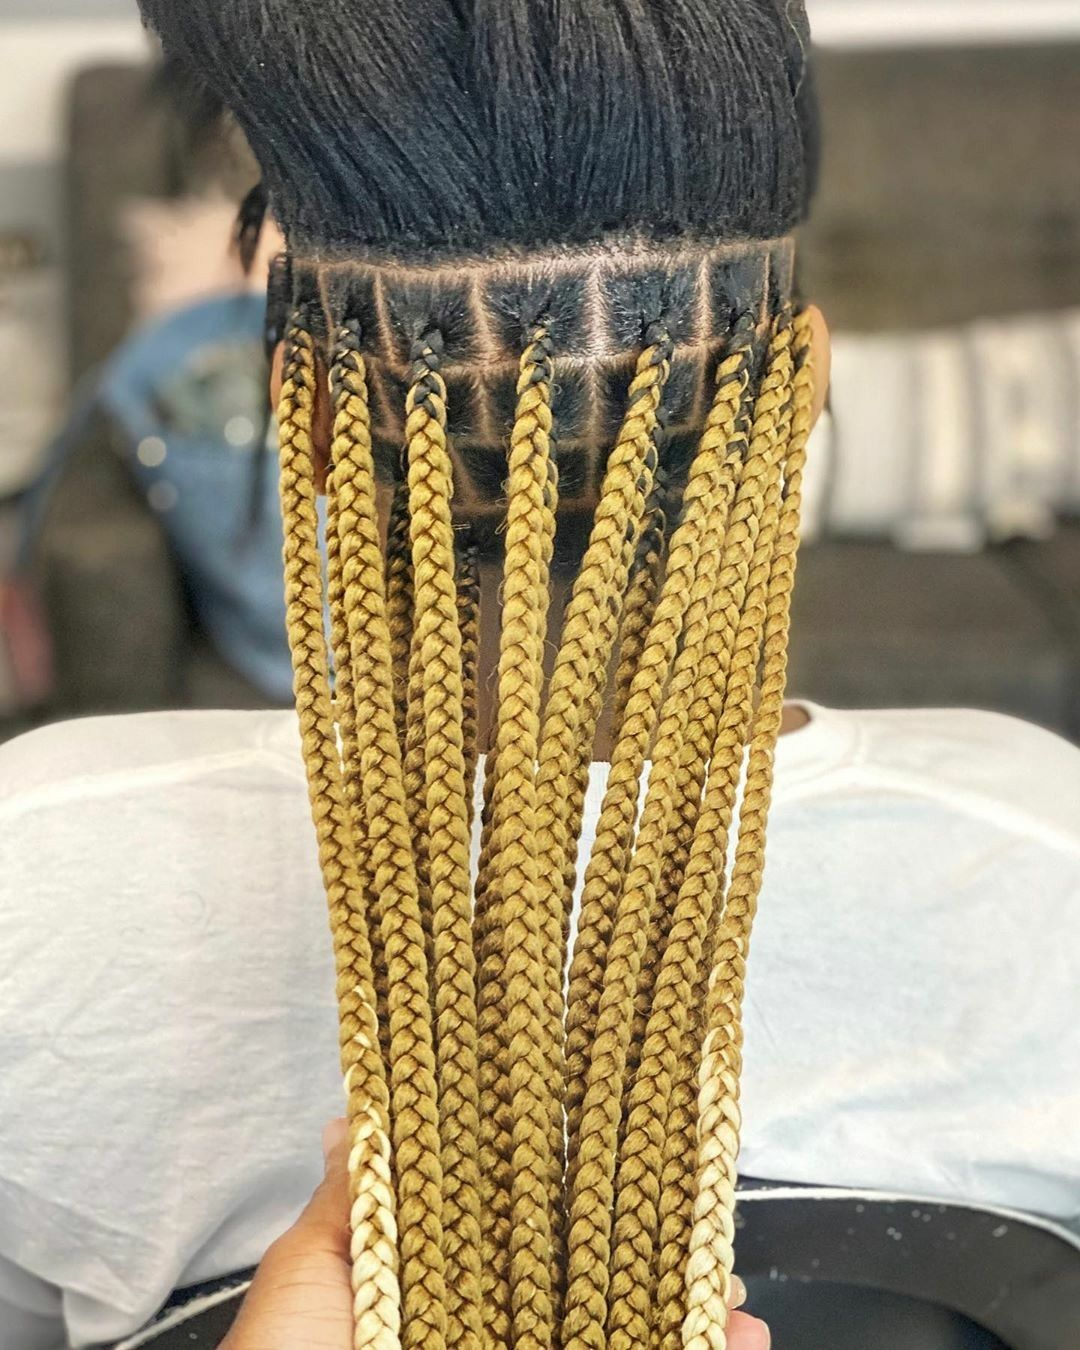 Amazing Braid Hairstyles For 2021 Braided Styles For Black Women In 2020 Box Braids Styling Cool Braids Braid Styles